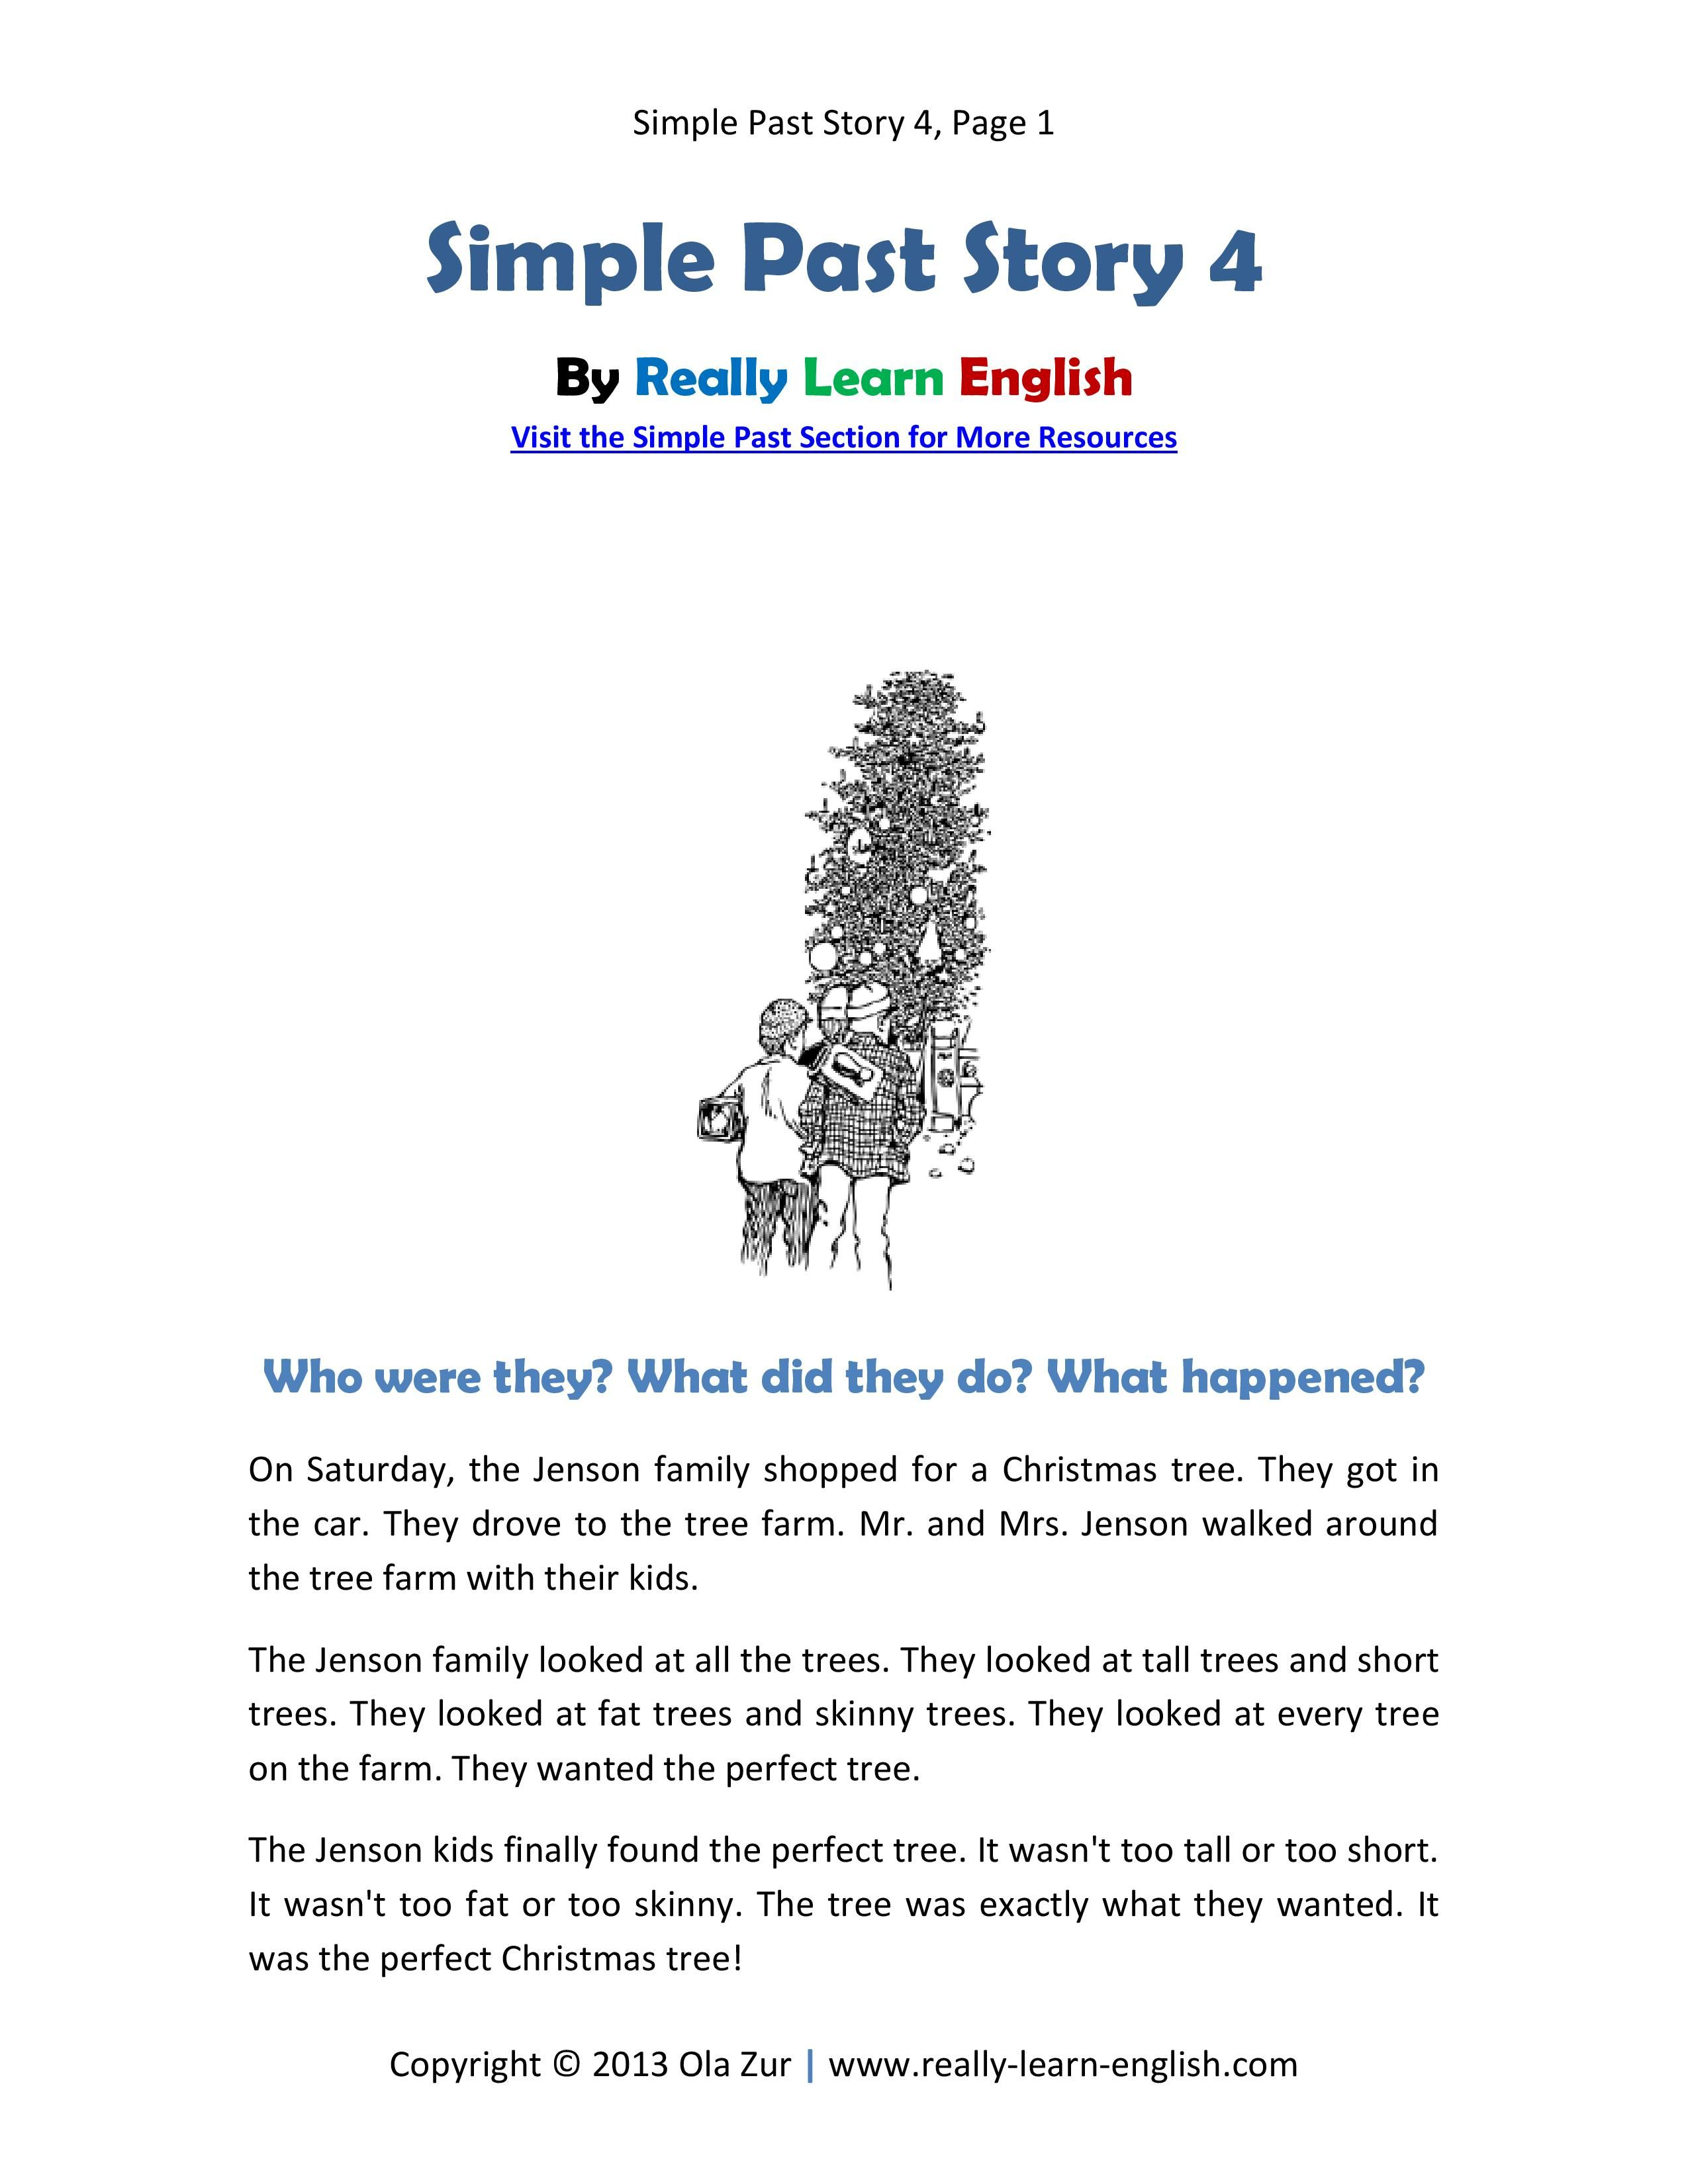 Descargar Libro English Grammar In Use Practice The Simple Past Tense Free Printable Short Story